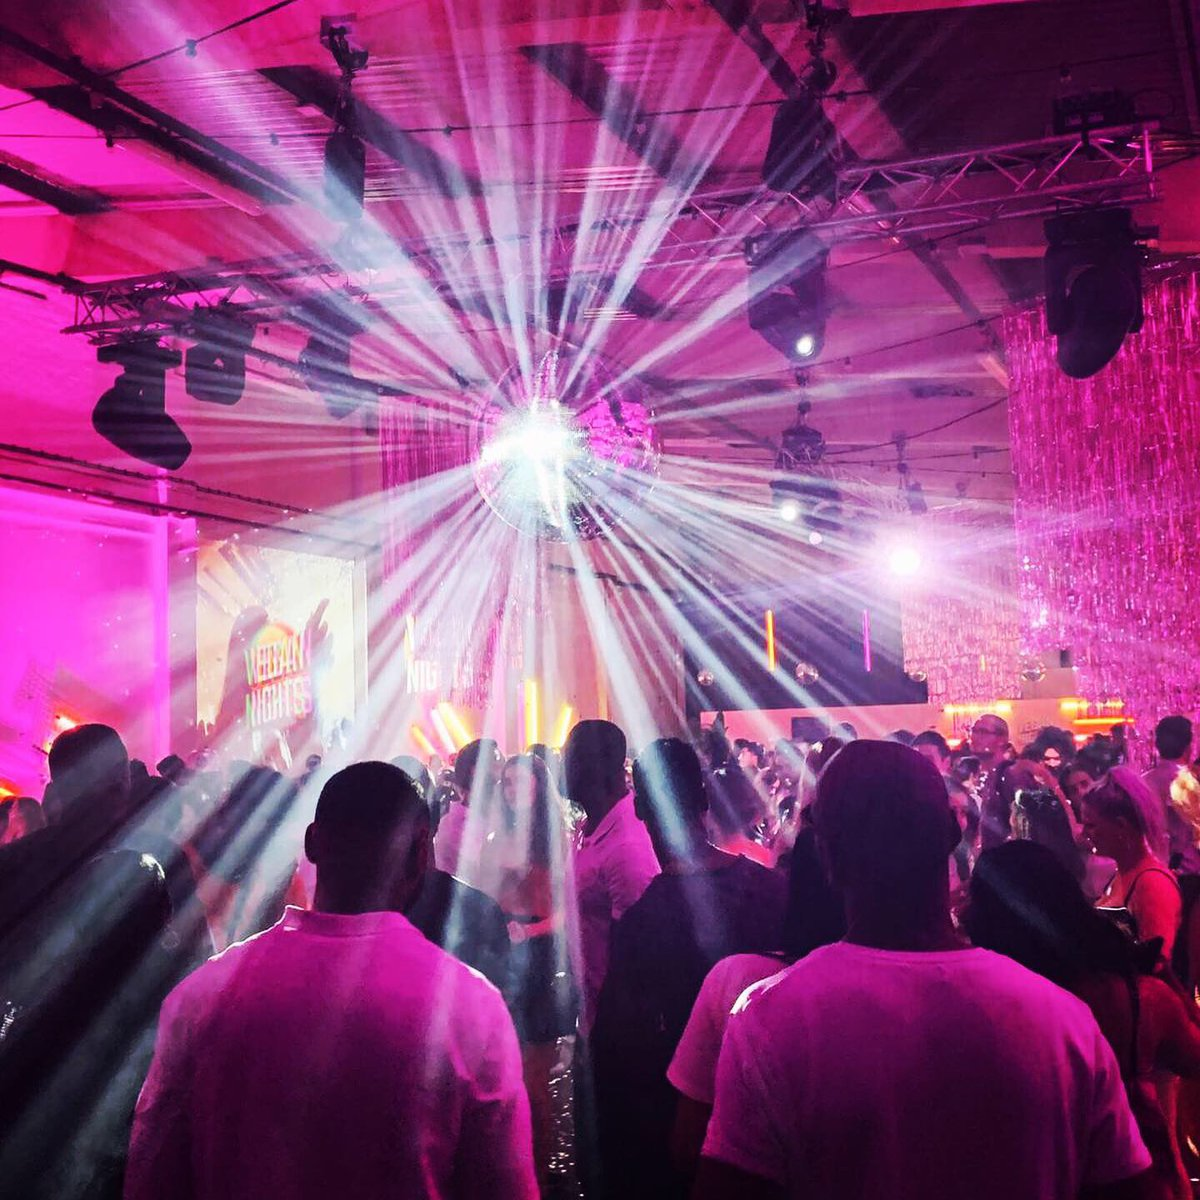 Last night's mirror ball action @vegannightsldn with @trumanbrewery #EOL #vegannights #vegan #eventprofs #mirrorball #trumanbrewery https://t.co/s4PAx6jfYT